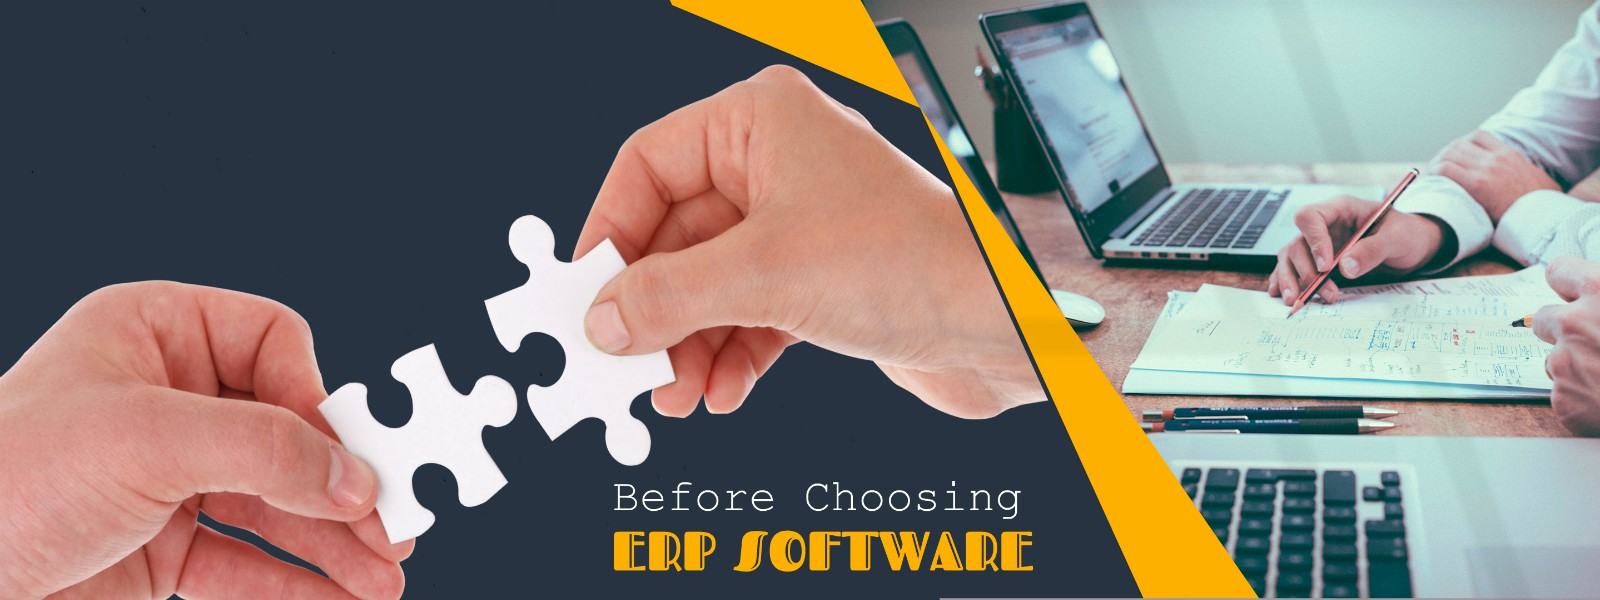 Factors to consider when choosing erp software